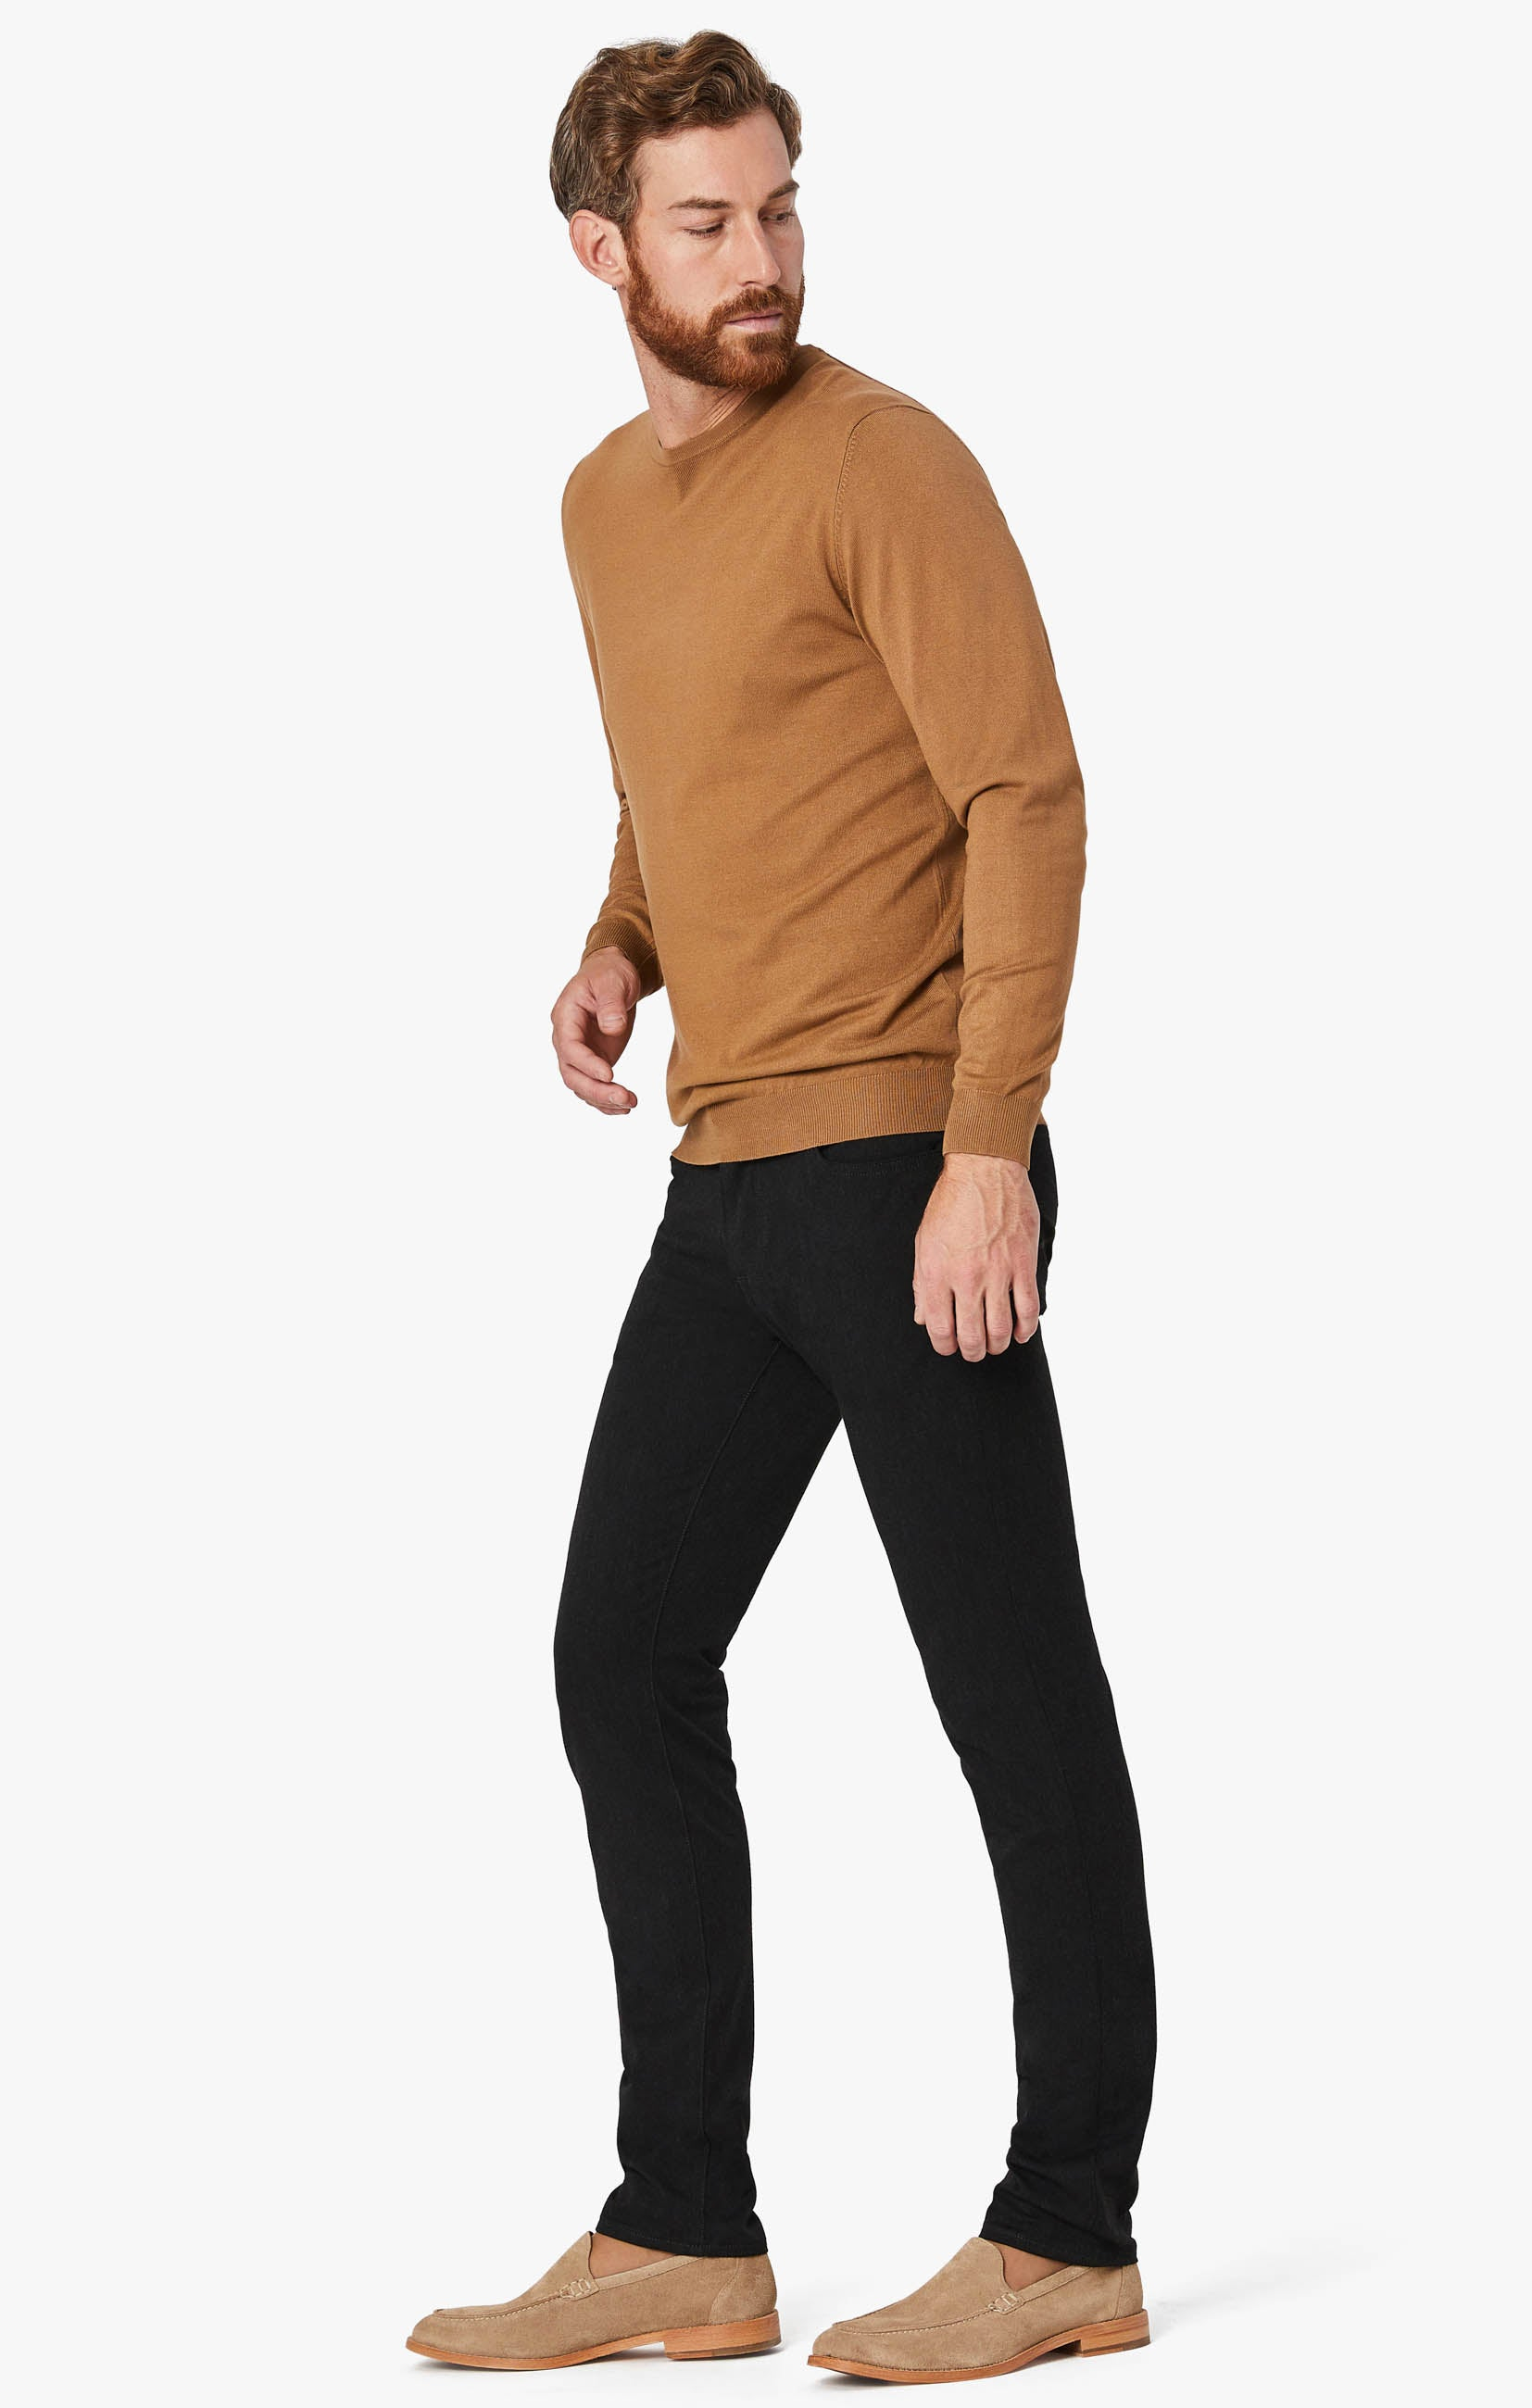 Courage Straight Leg Pants in Charcoal Winter Cashmere Image 4